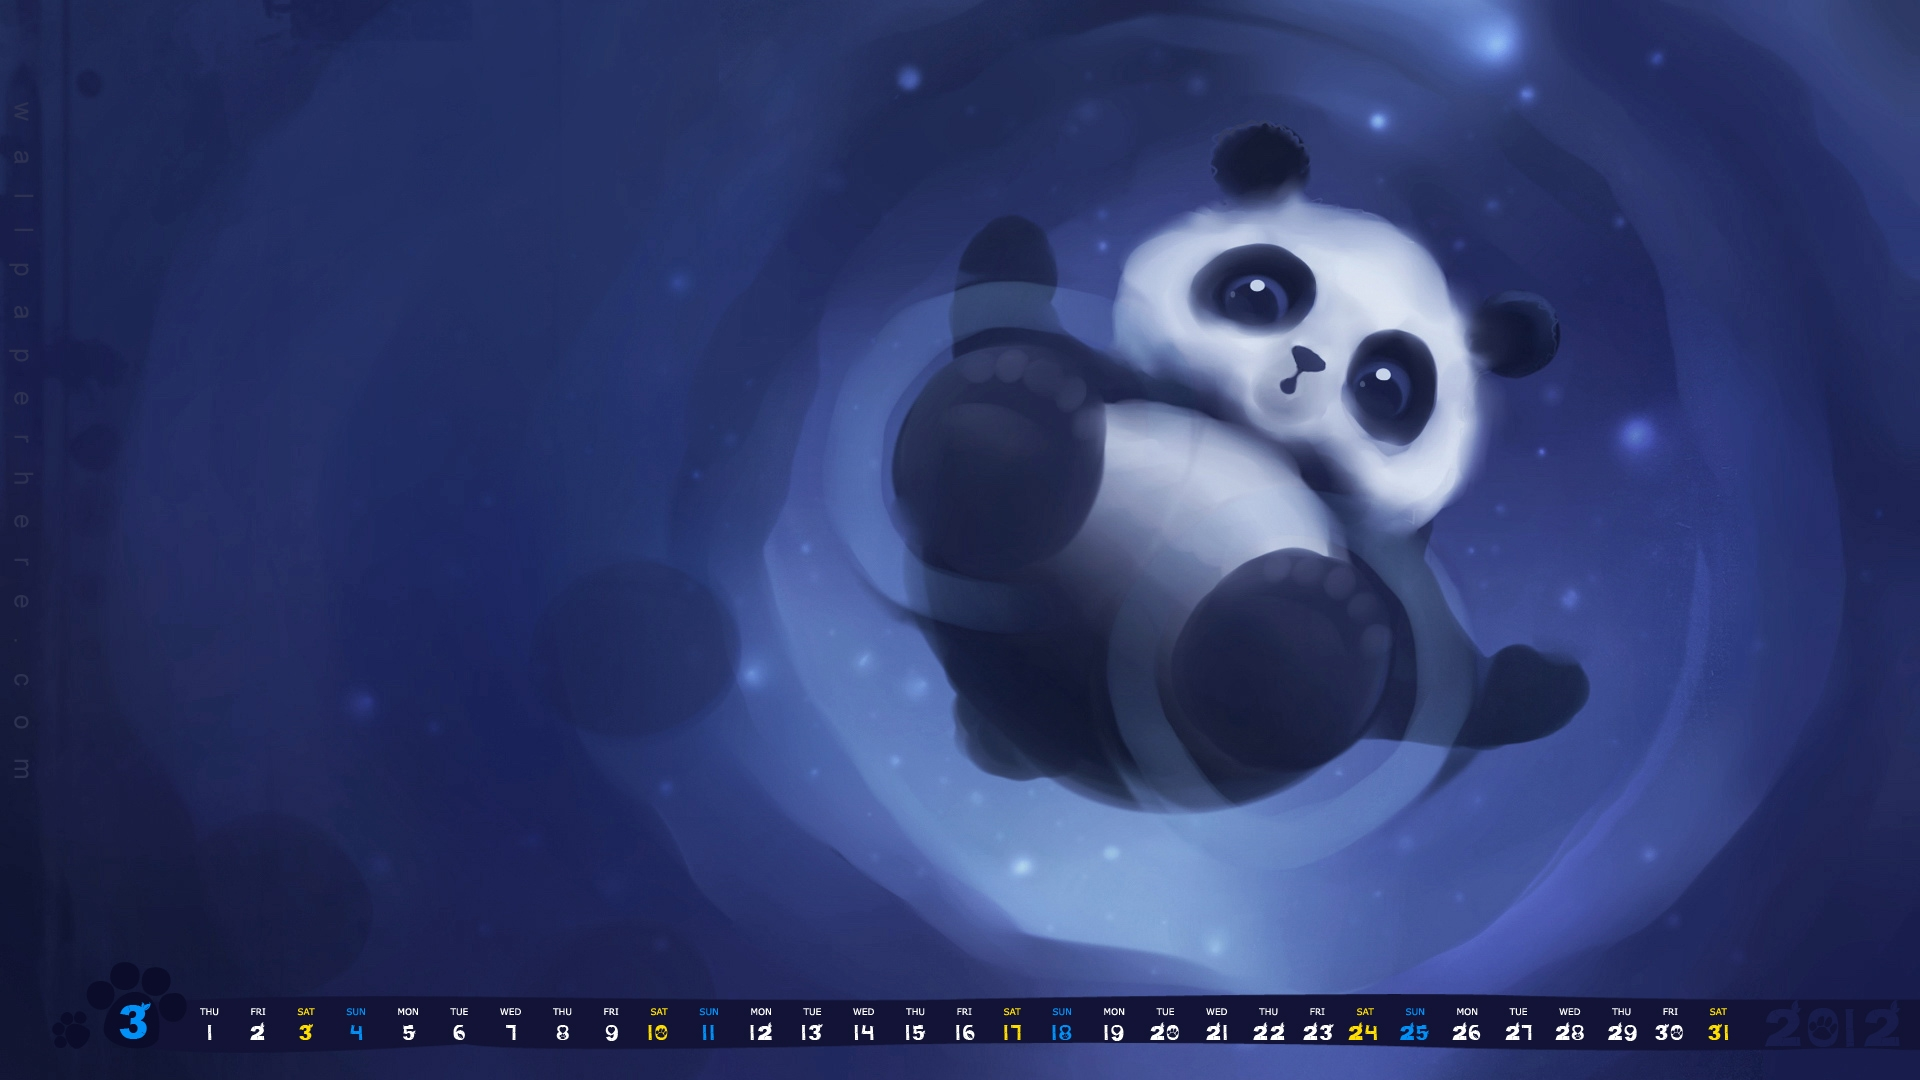 Cute Panda March 2012 Calendar Wallpaper